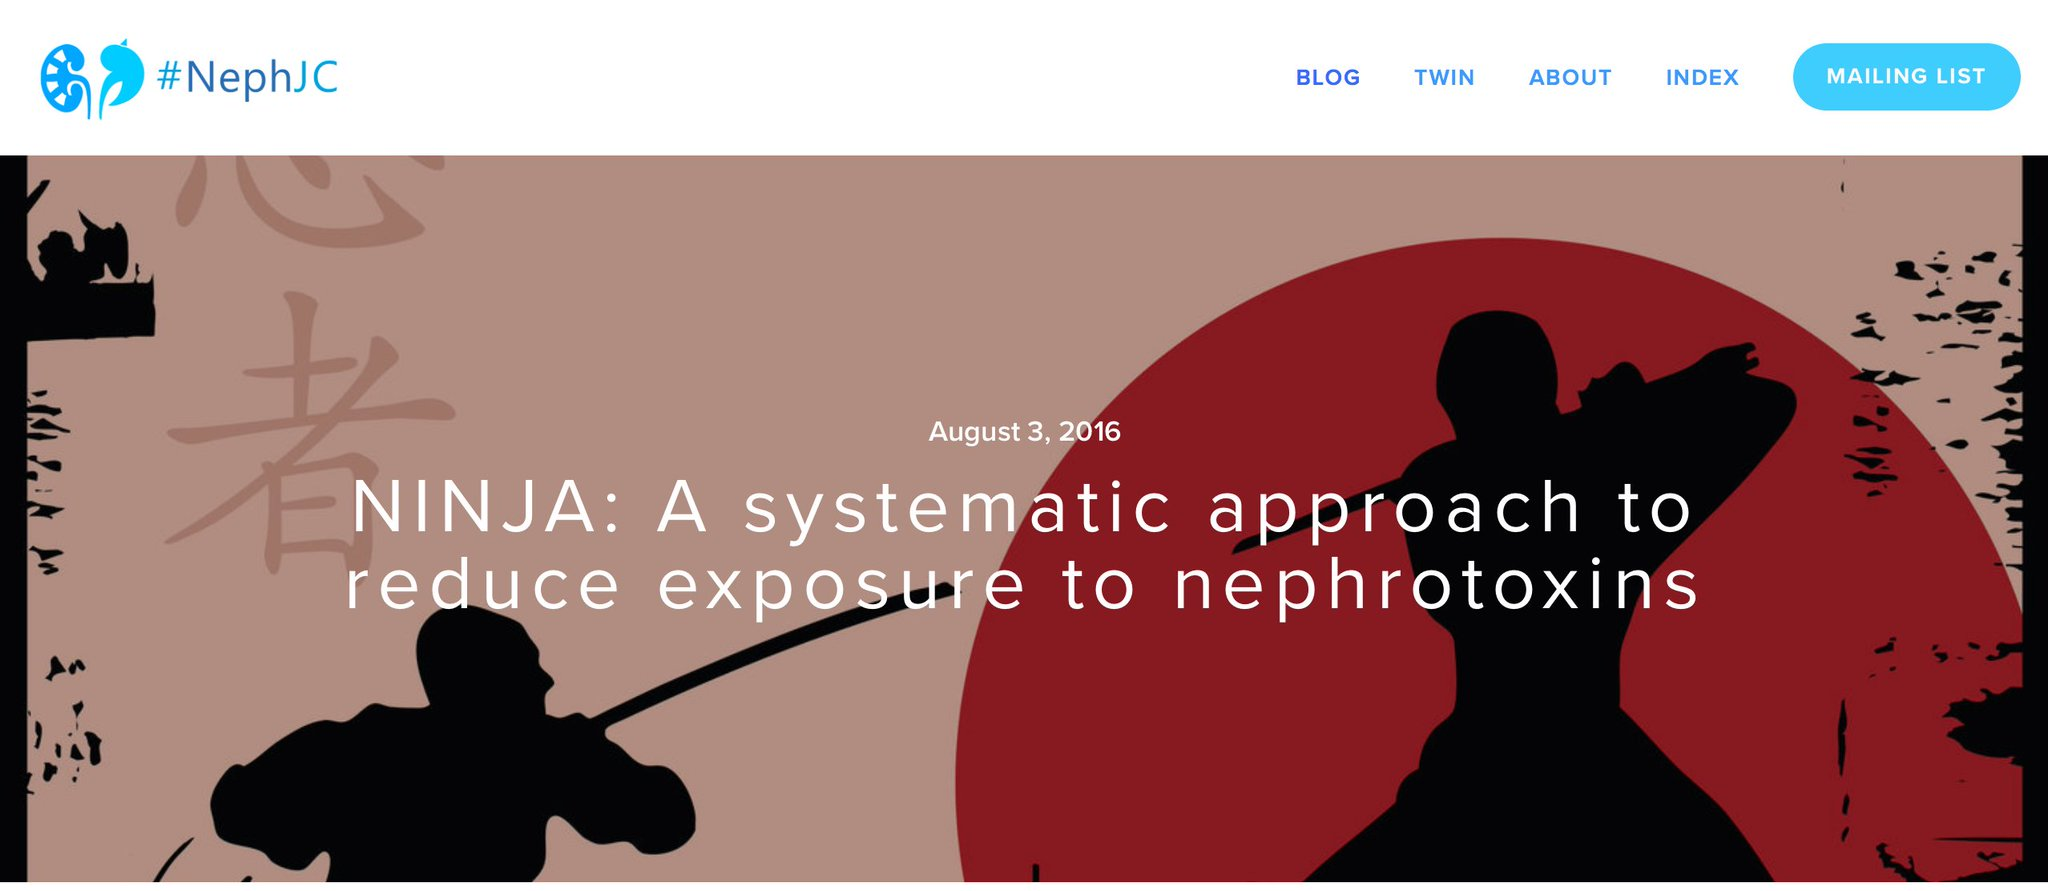 Thumbnail for NINJA: A systematic approach to reduce exposure to nephrotoxins